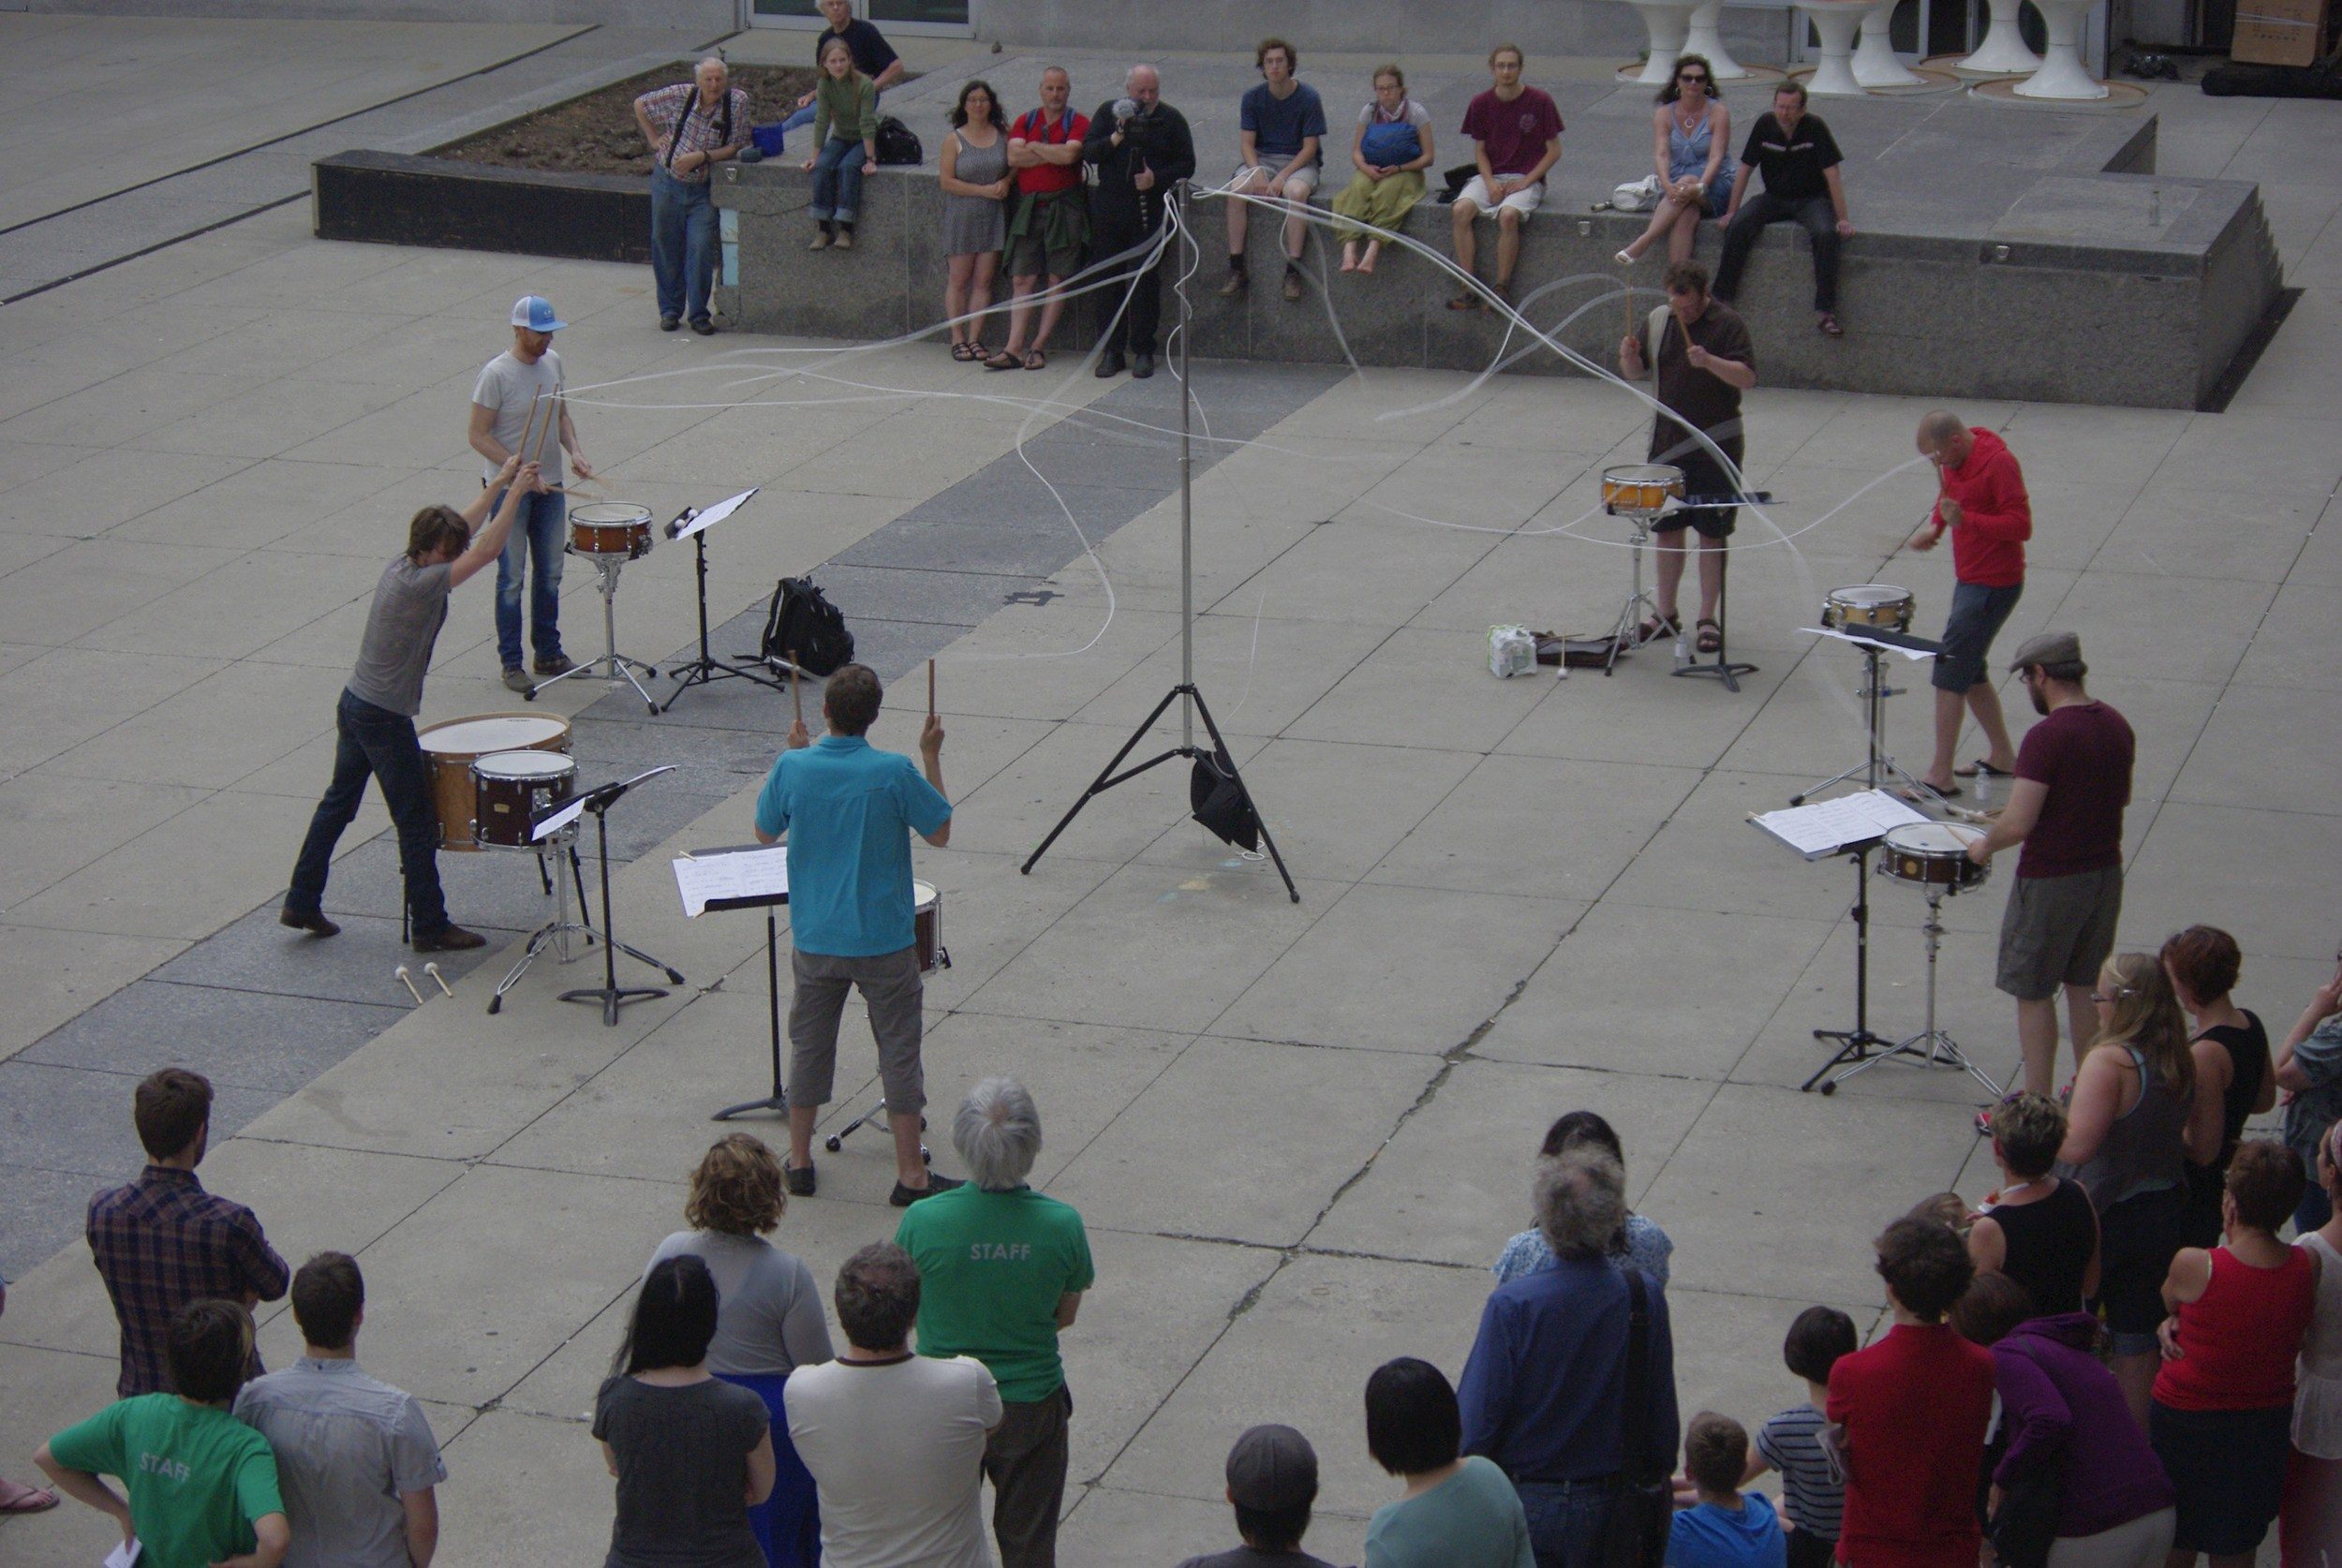 BTE13: Strings Attached - Kitchener Civic Square : photo by Phil Bast